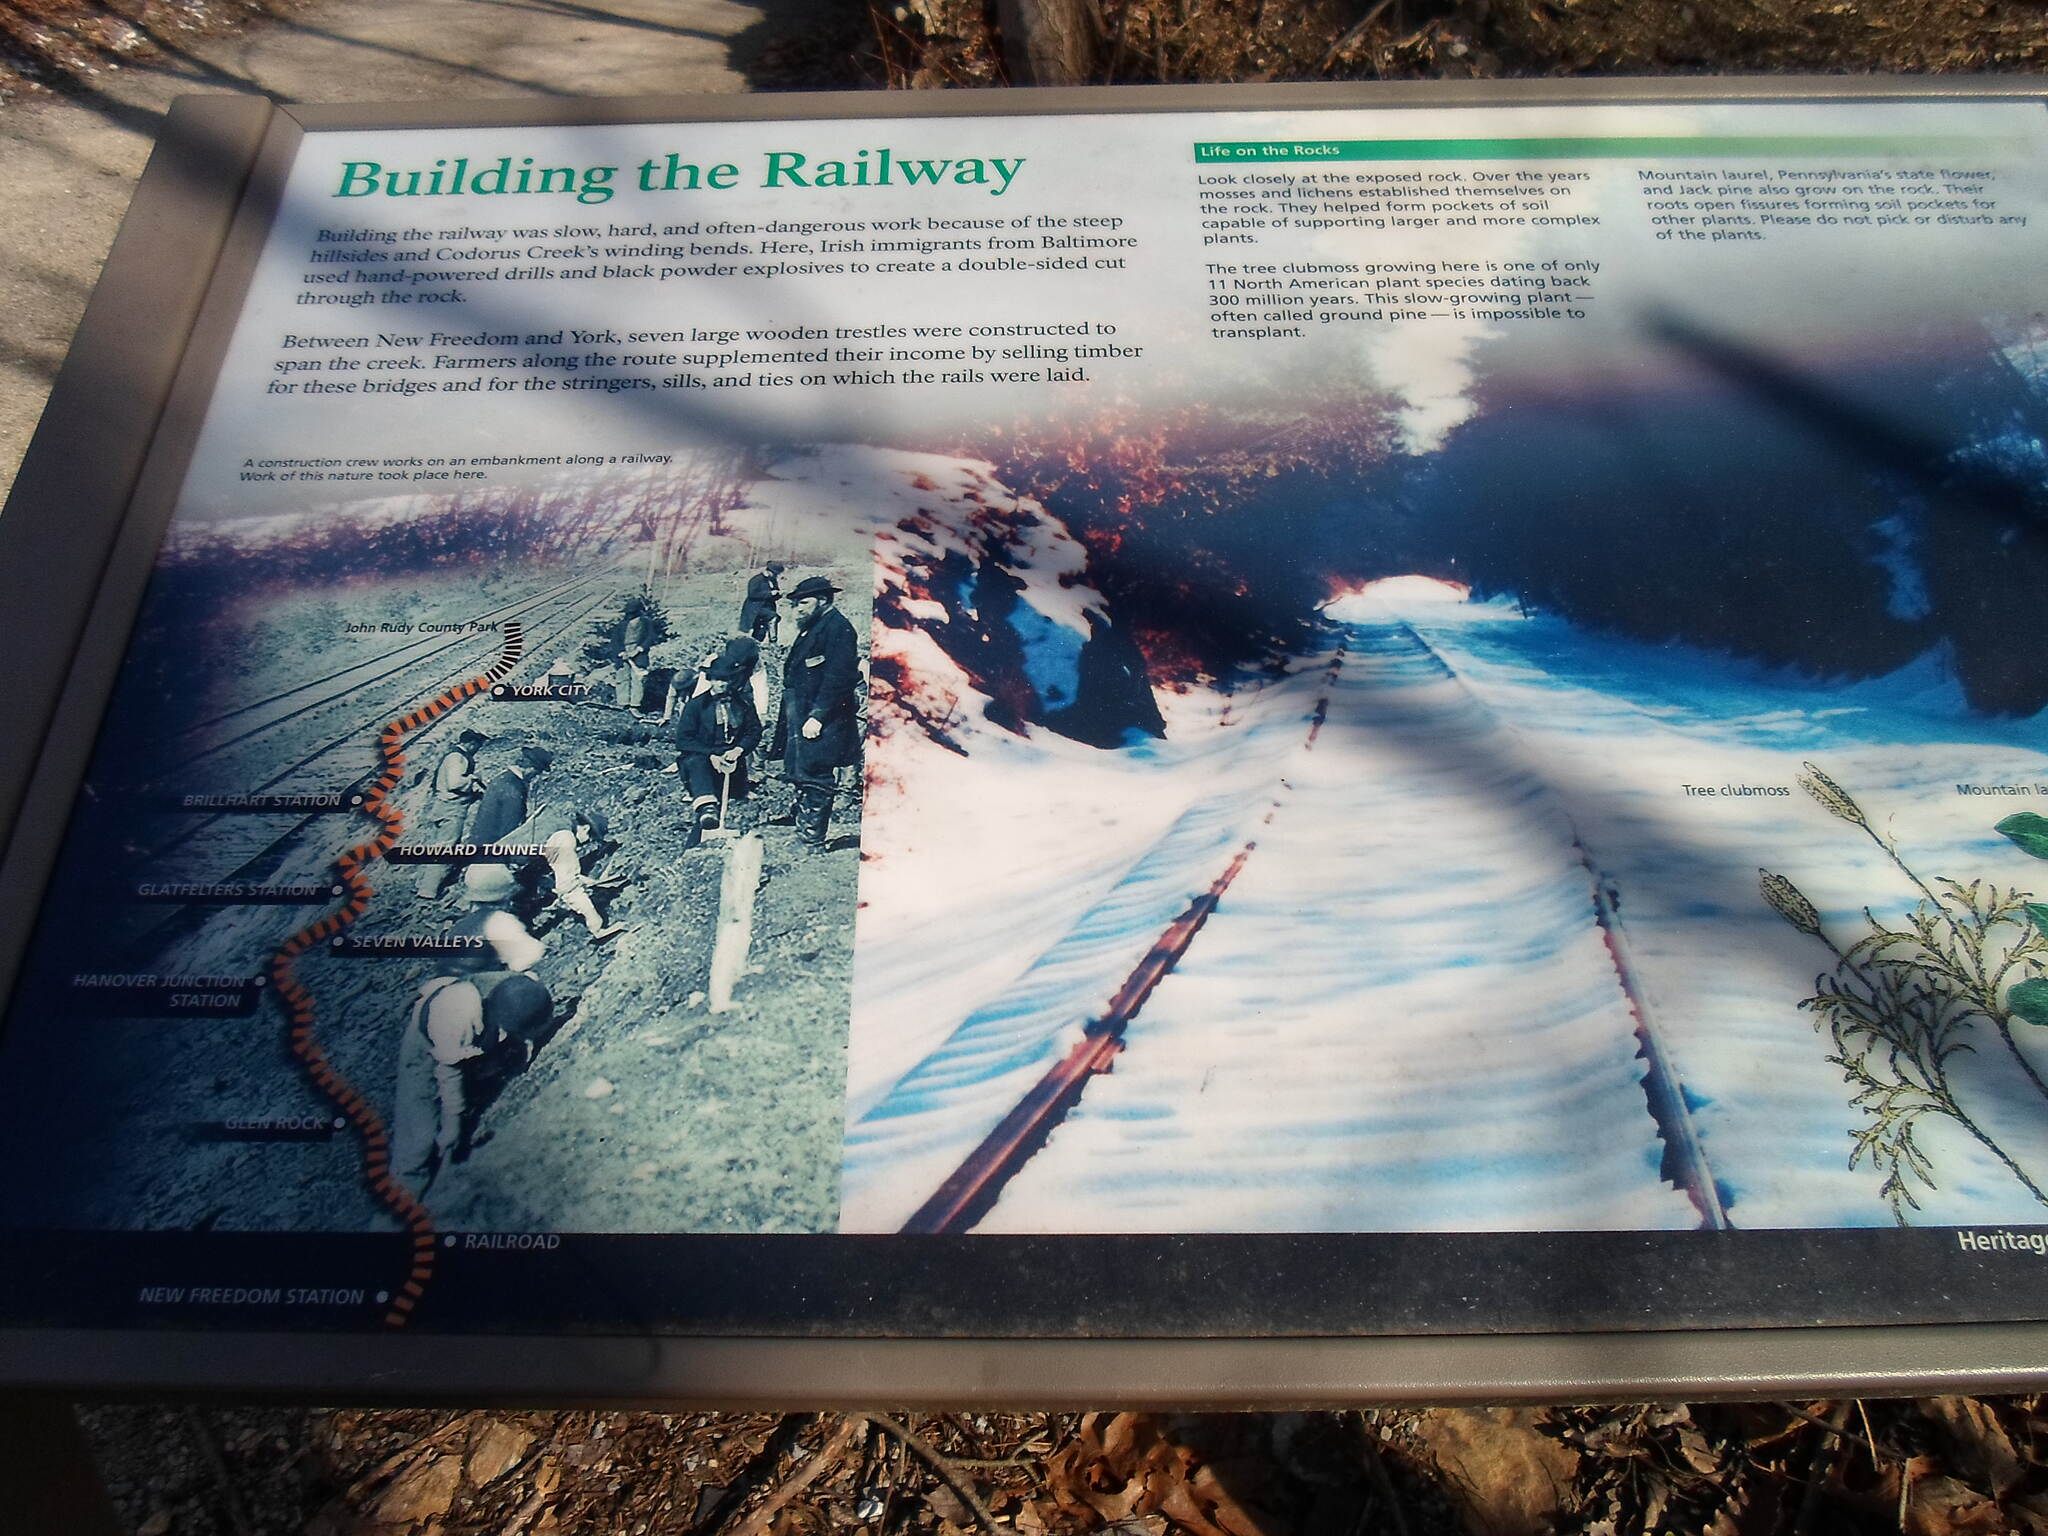 Heritage Rail Trail County Park Heritage Rail Trail Park This interpretive sign tells the story of the construction of the North Central RR, one of the nation's oldest, in the early 19th century.